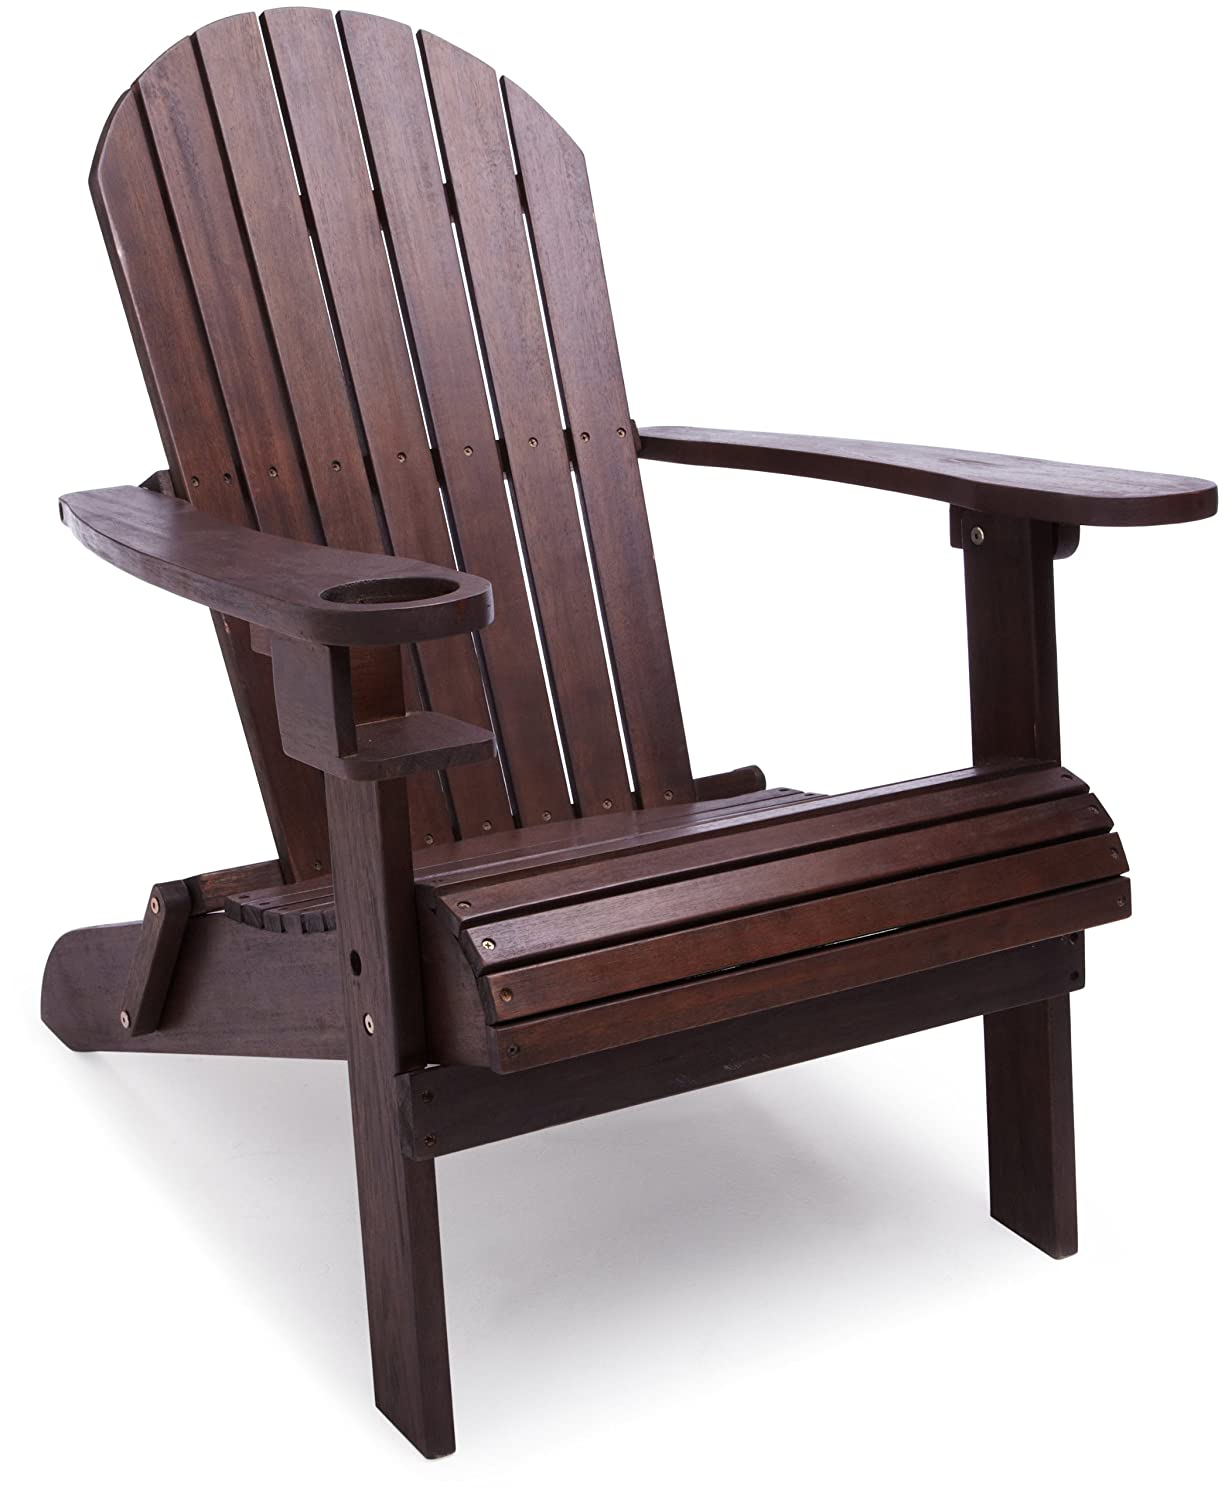 Wood Patio Chairs Home Decor and Furniture Deals